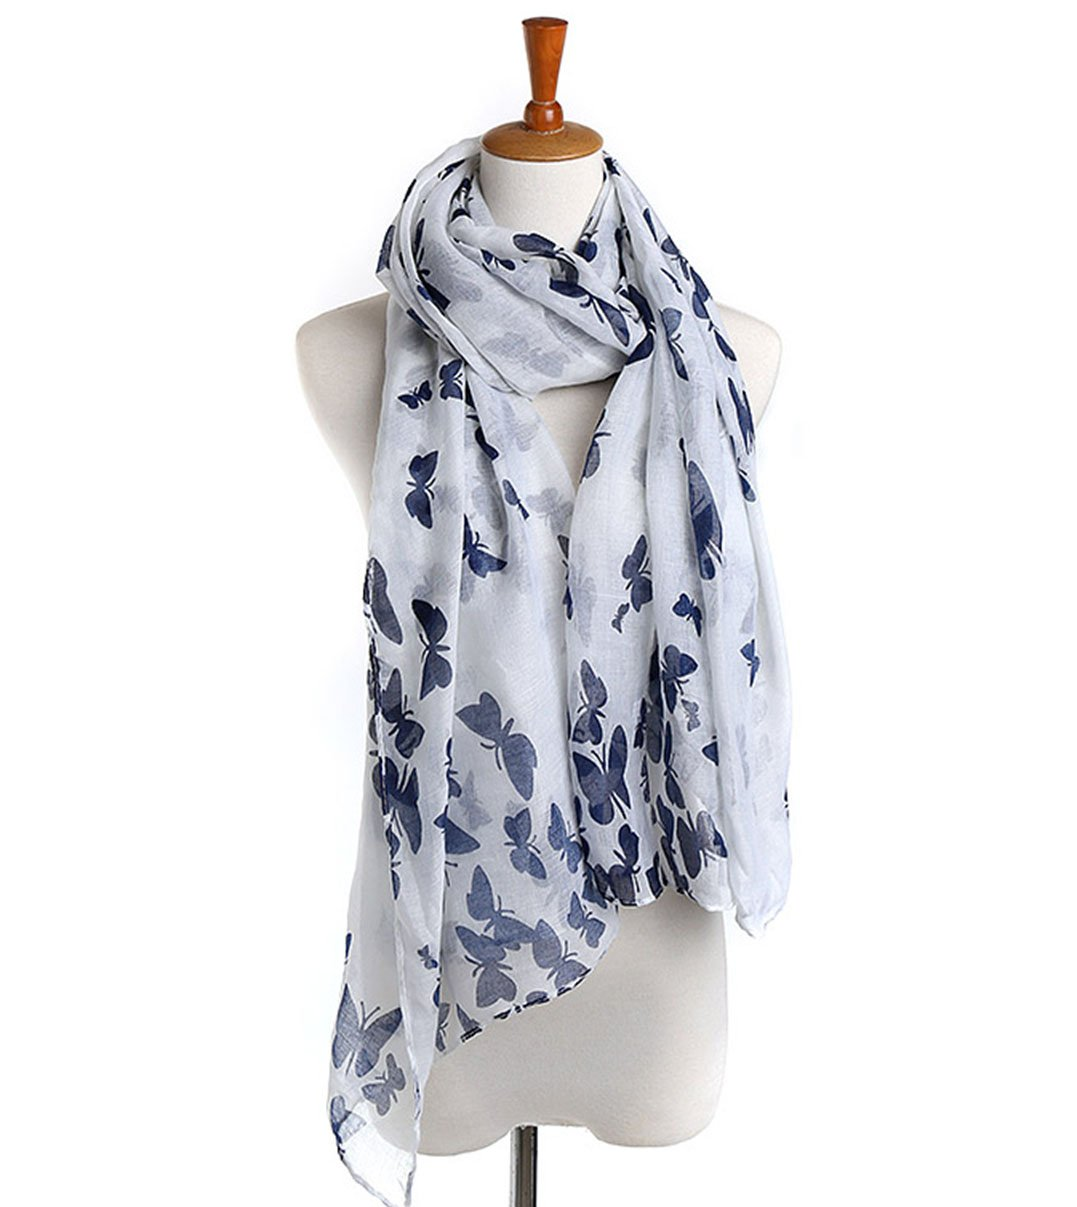 Apparelsales Women's Girls Voile Dog Print Shawl Scarf Scarf 74in(Length) 34in(Width) ColorA QLFA CA20151224-1